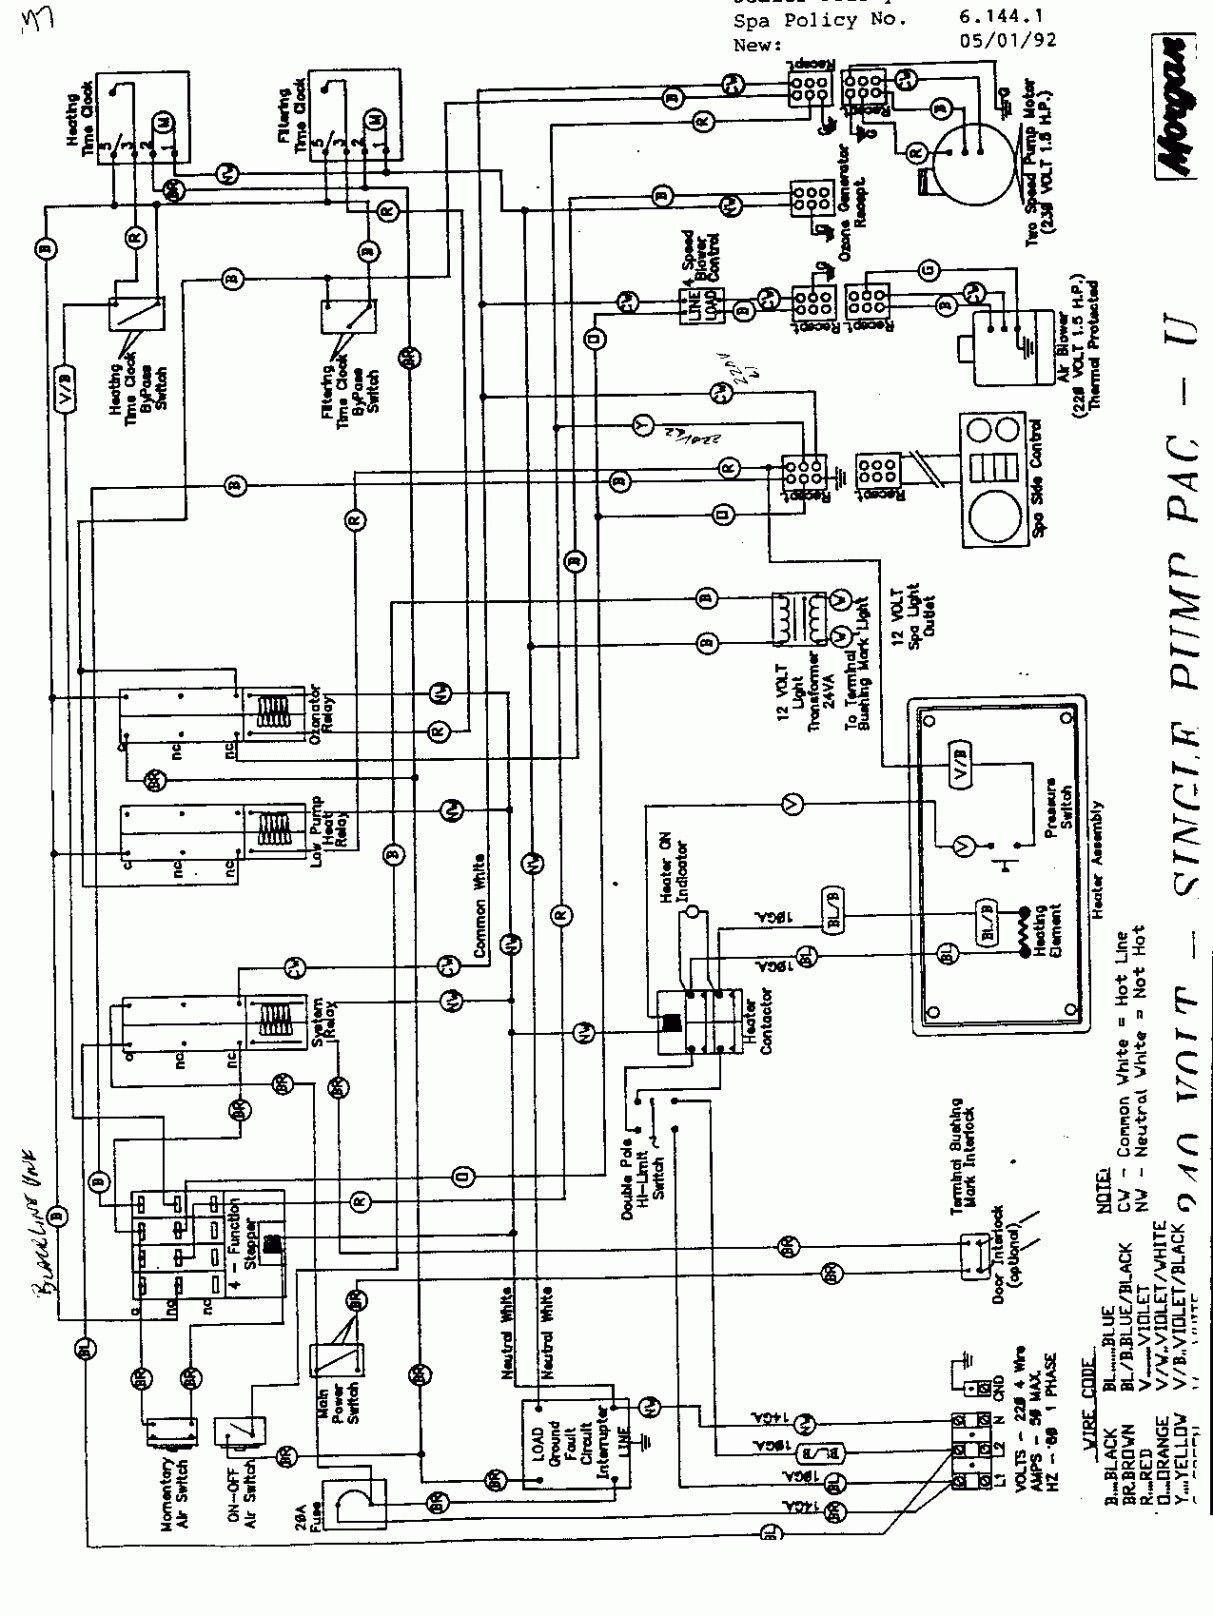 medium resolution of new gfci wiring diagram for hot tub diagram diagramsample diagramtemplate wiringdiagram